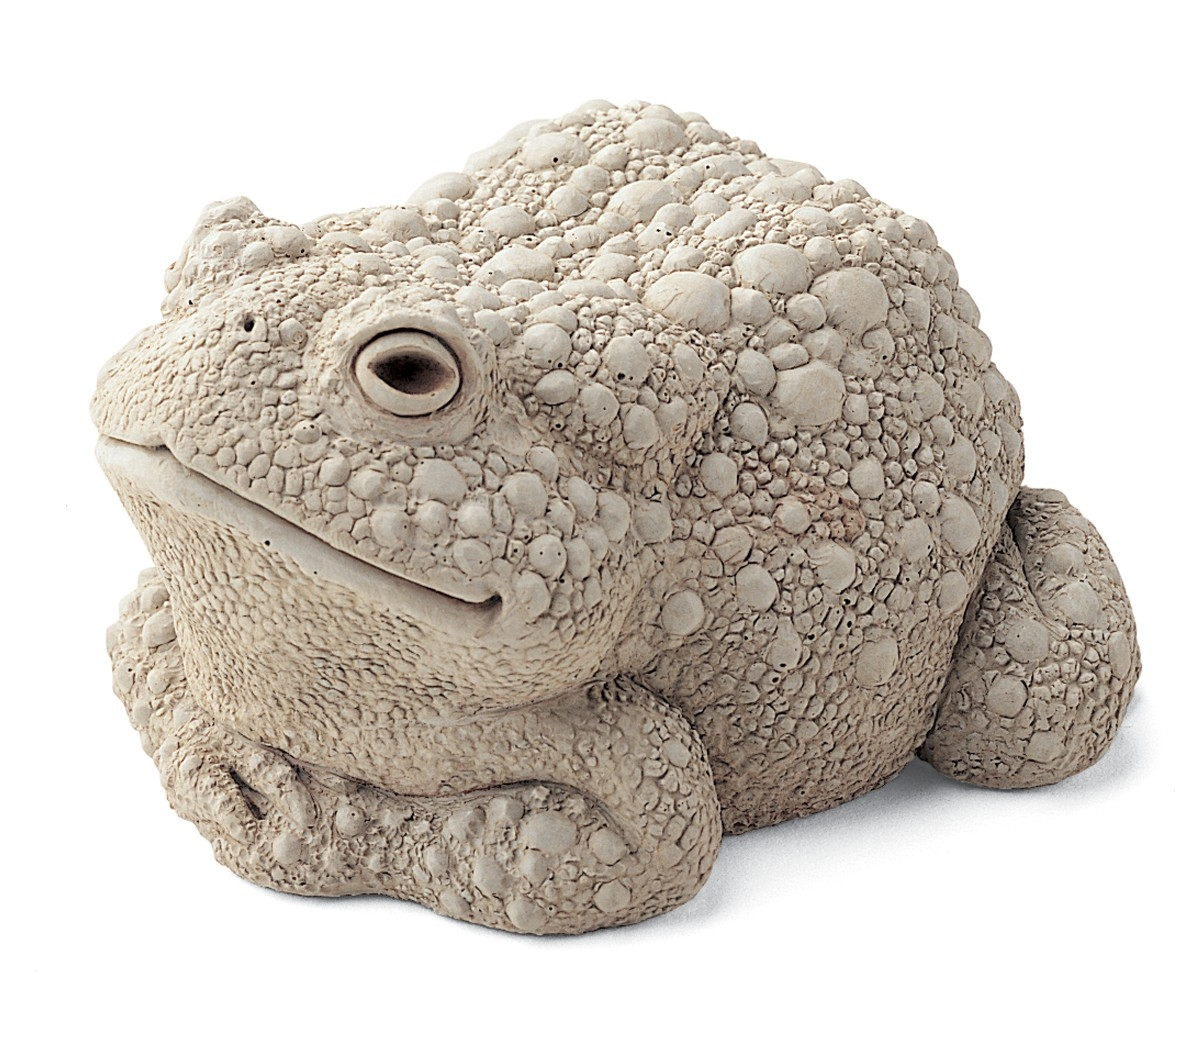 Crouched warty toad